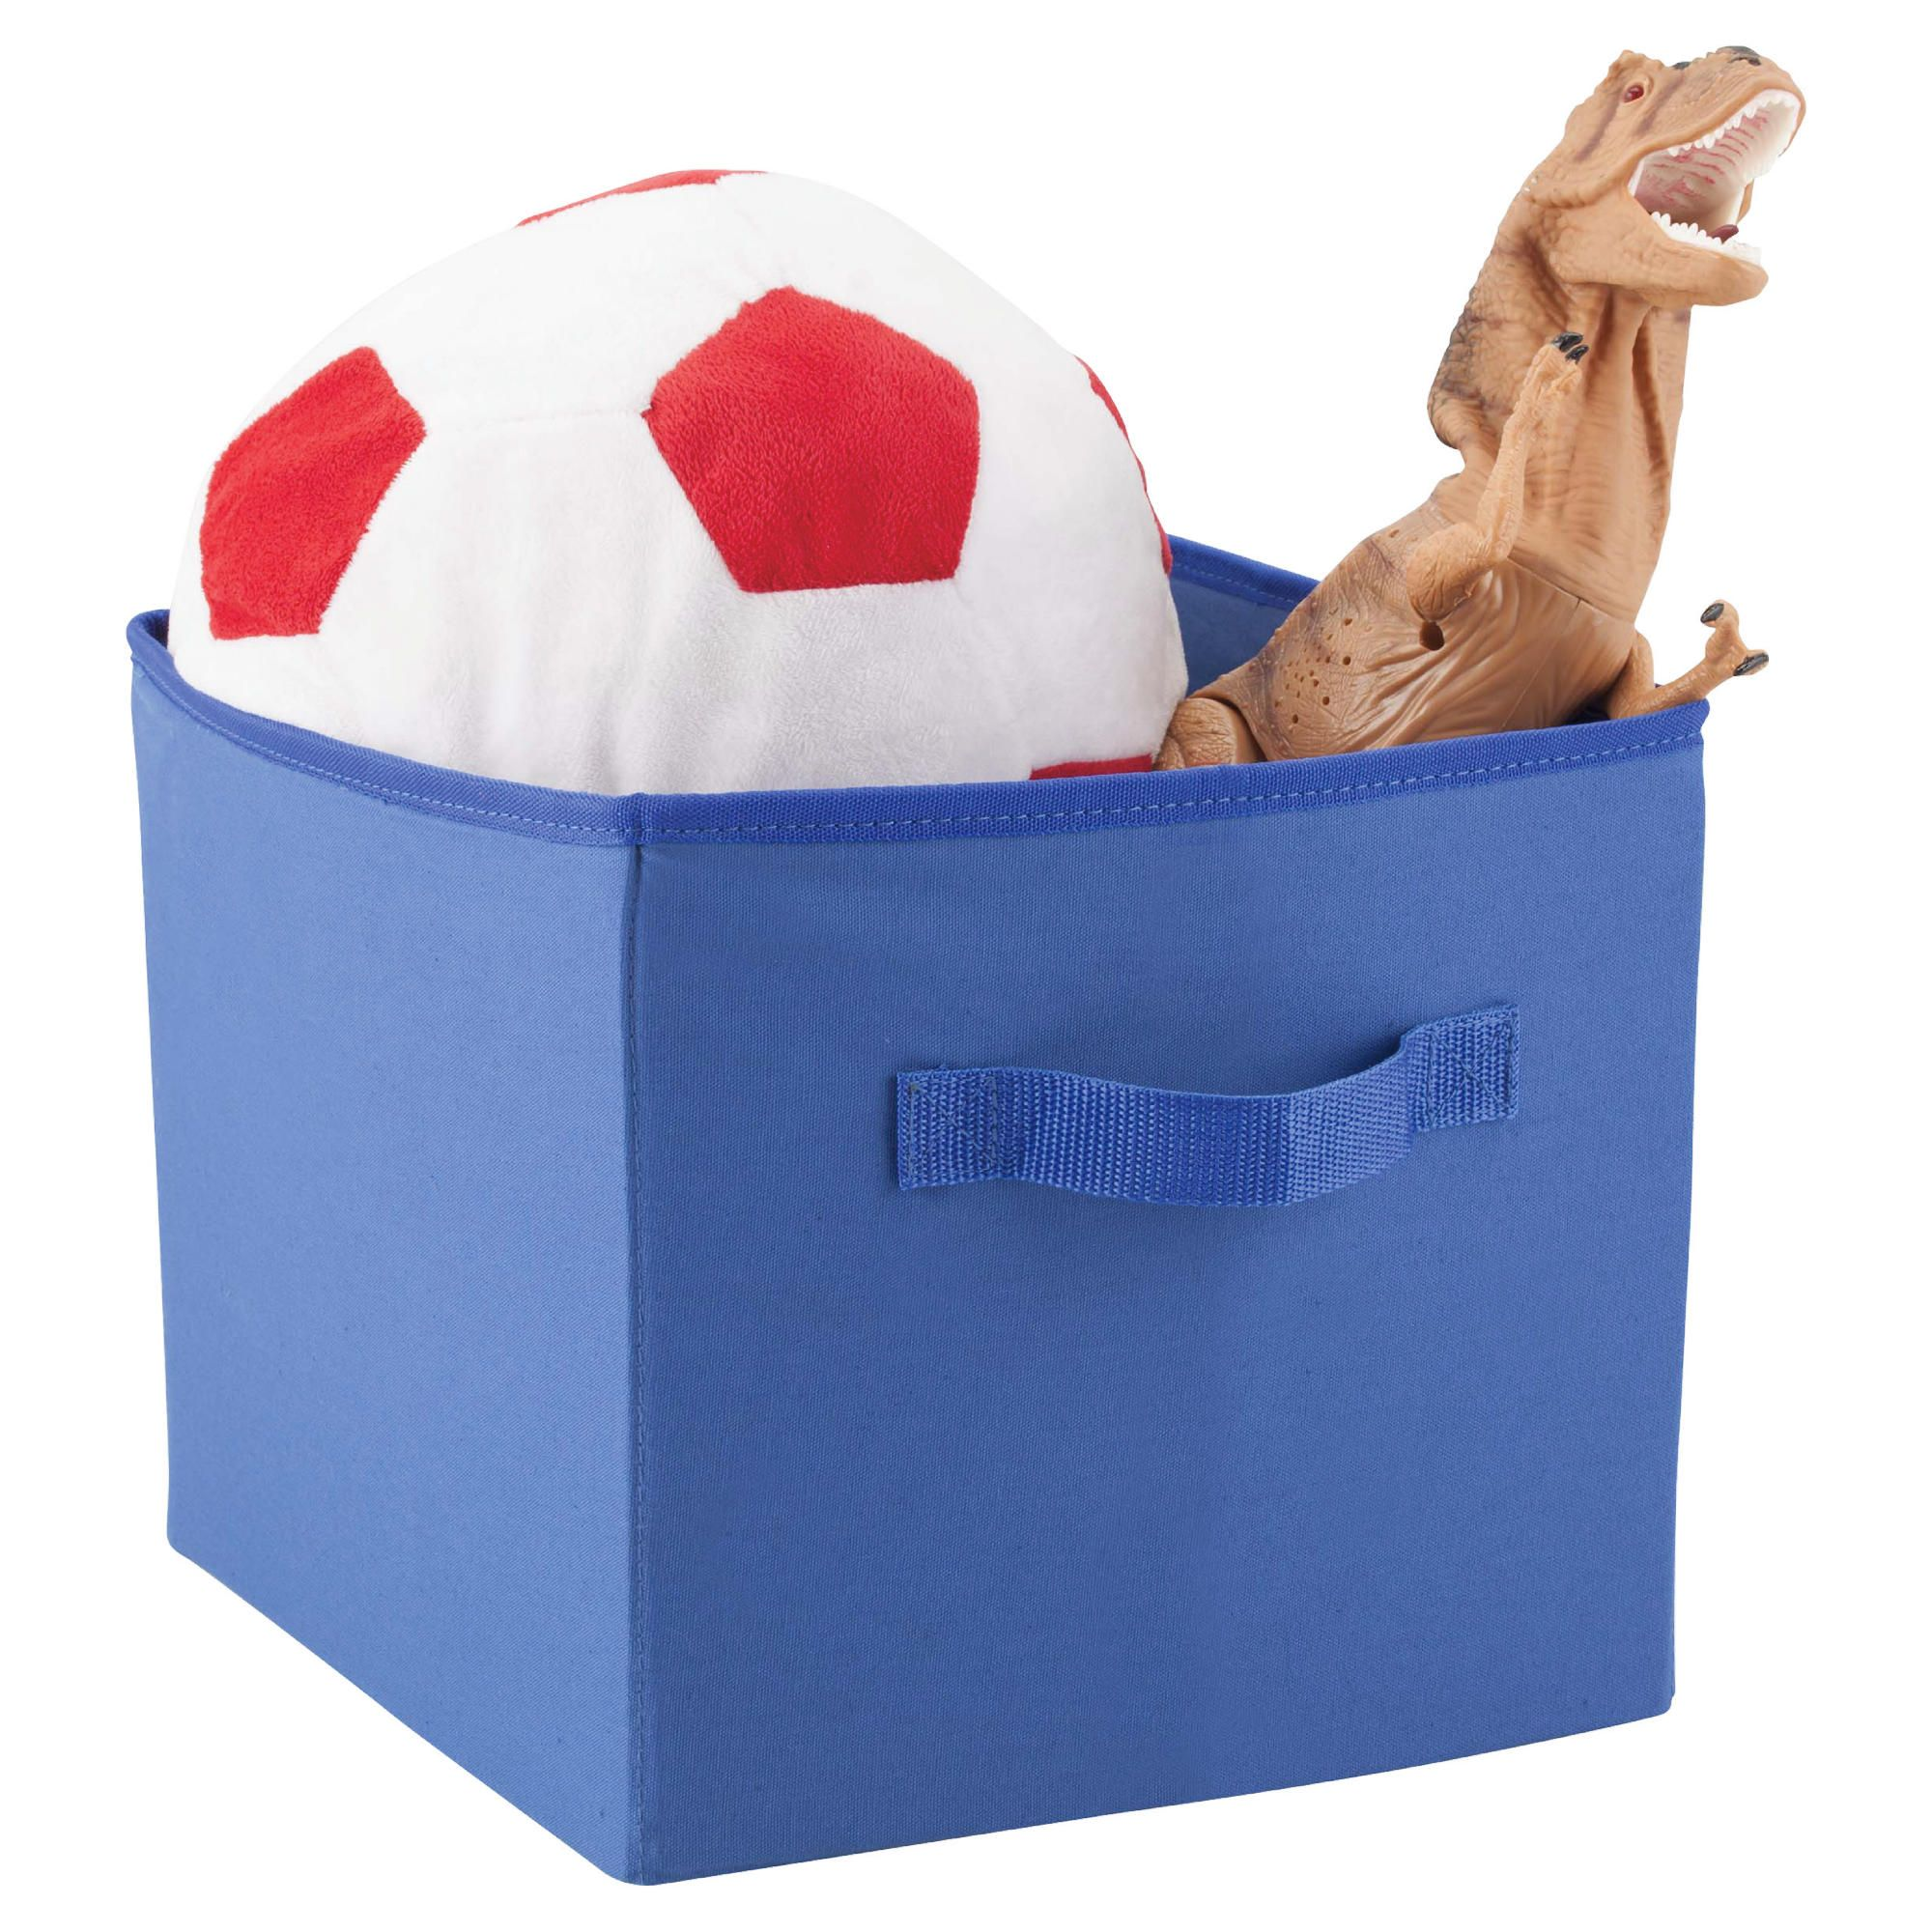 Kids storage blue